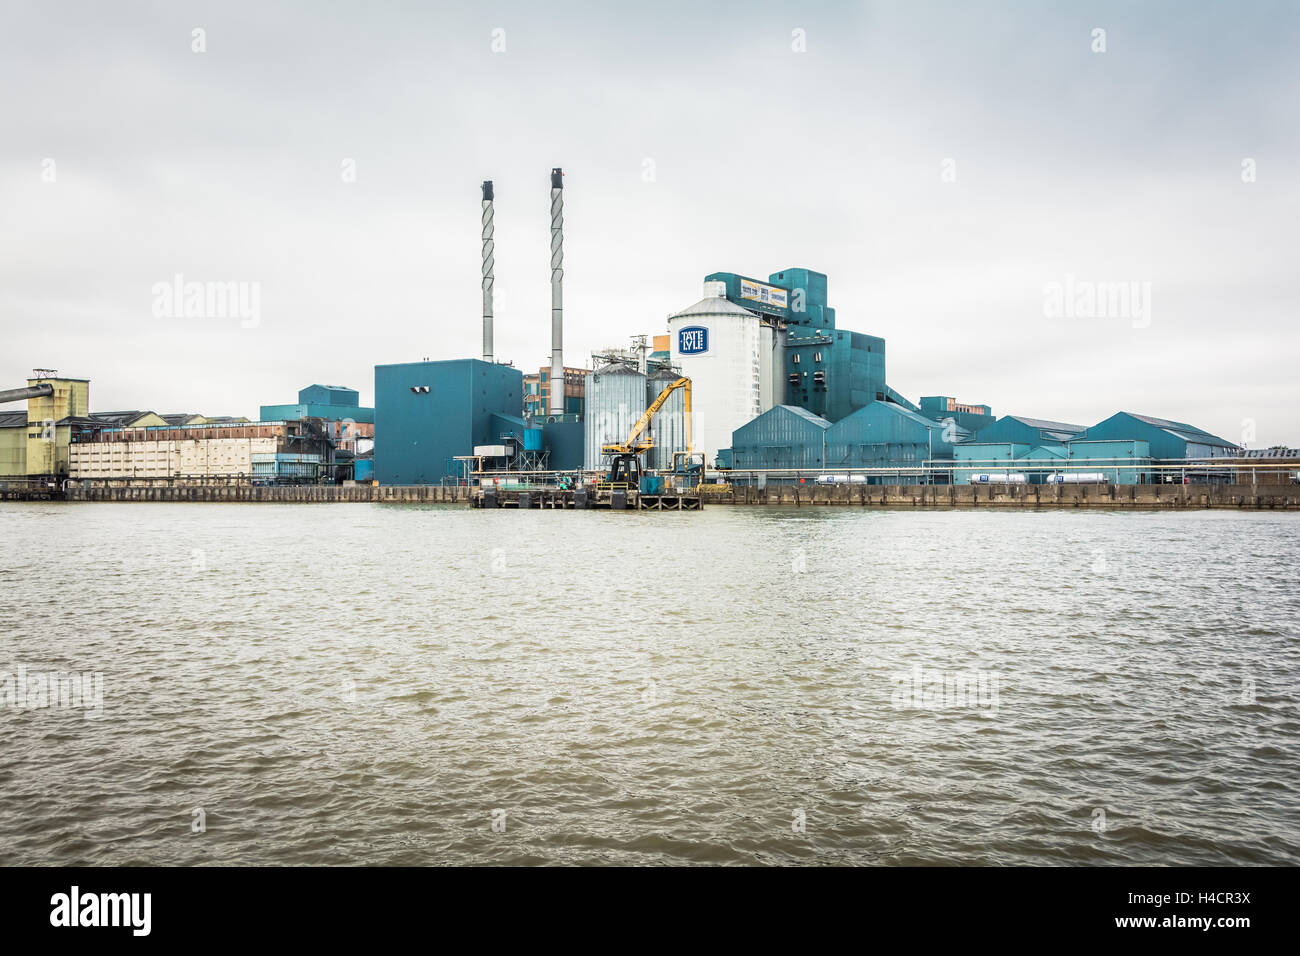 The Tate and Lyle sugar refinery in Silvertown near London City Airport, UK - Stock Image